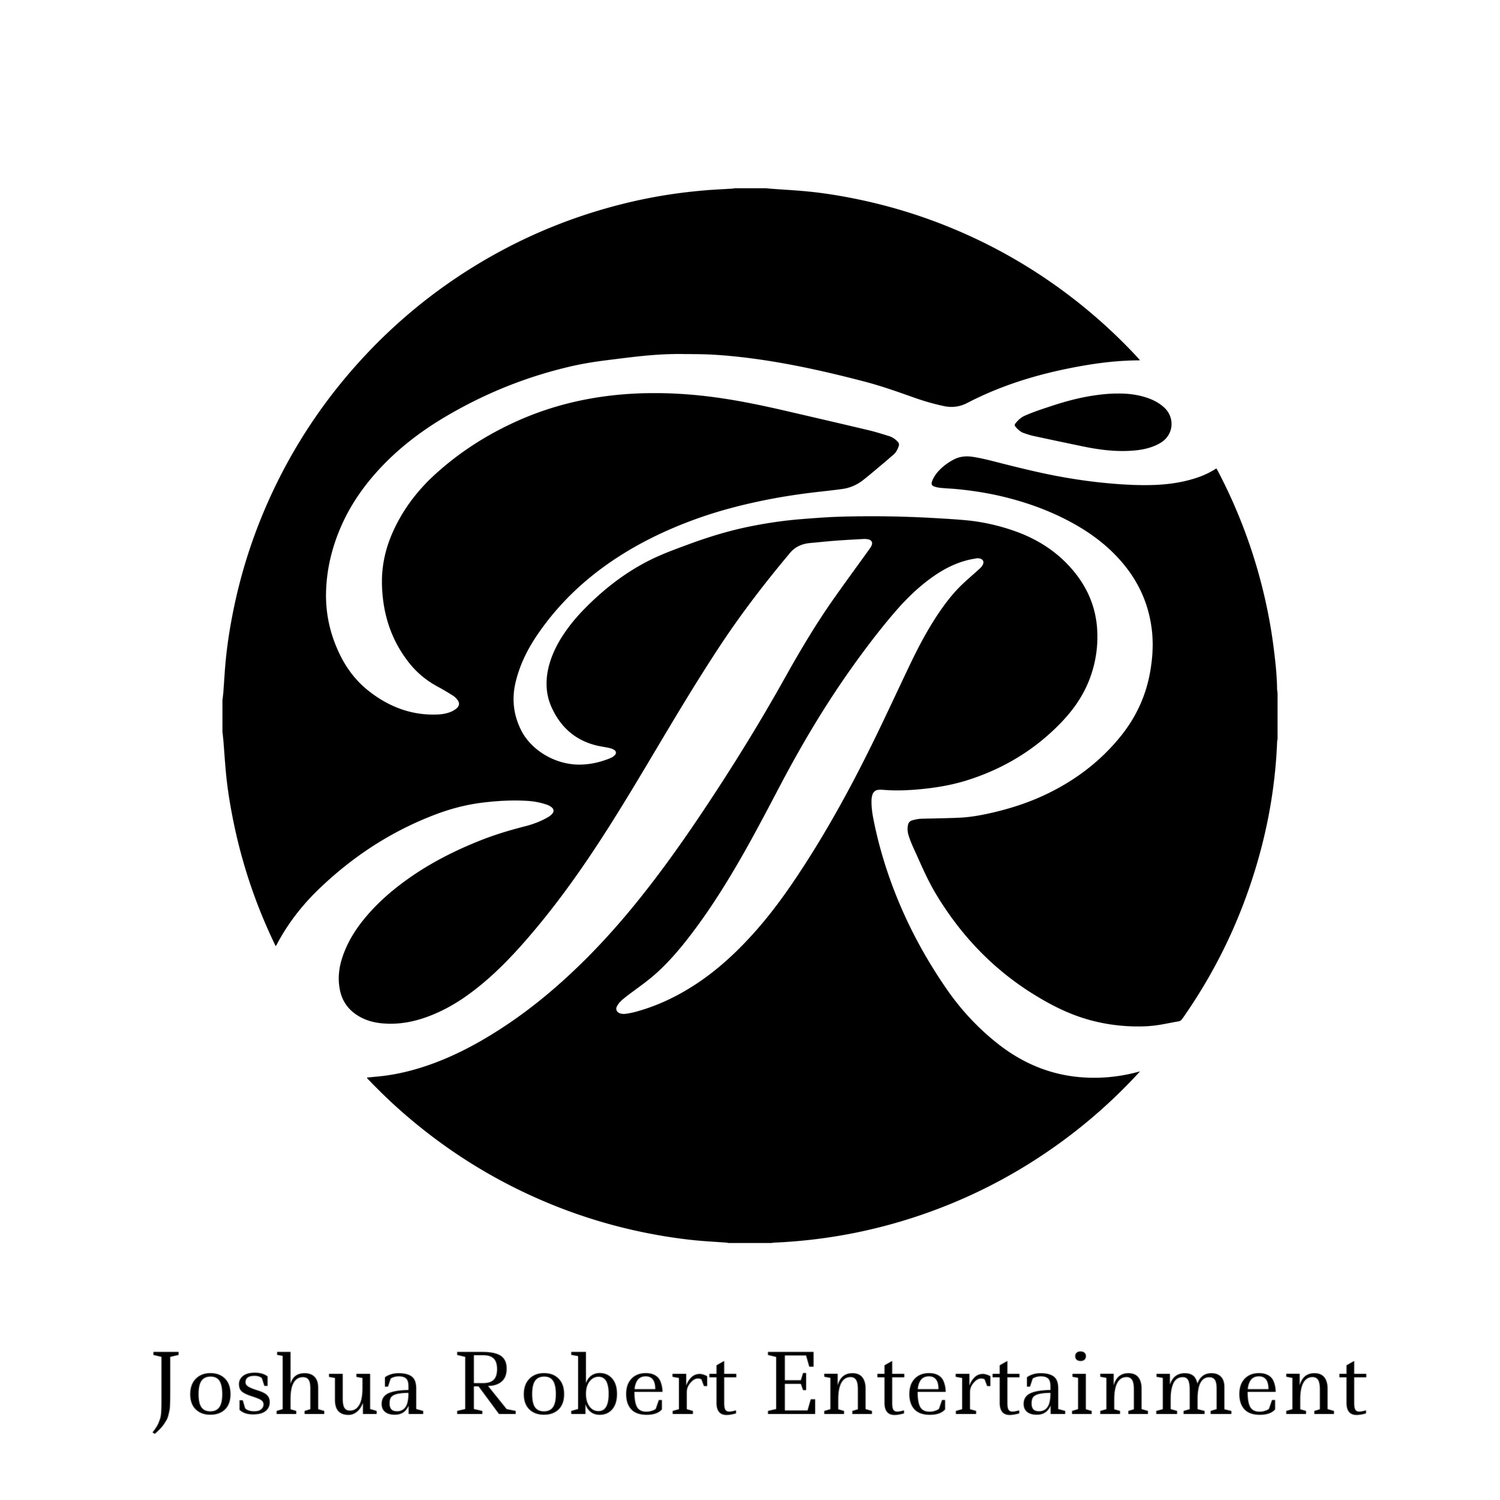 Joshua Robert Entertainment